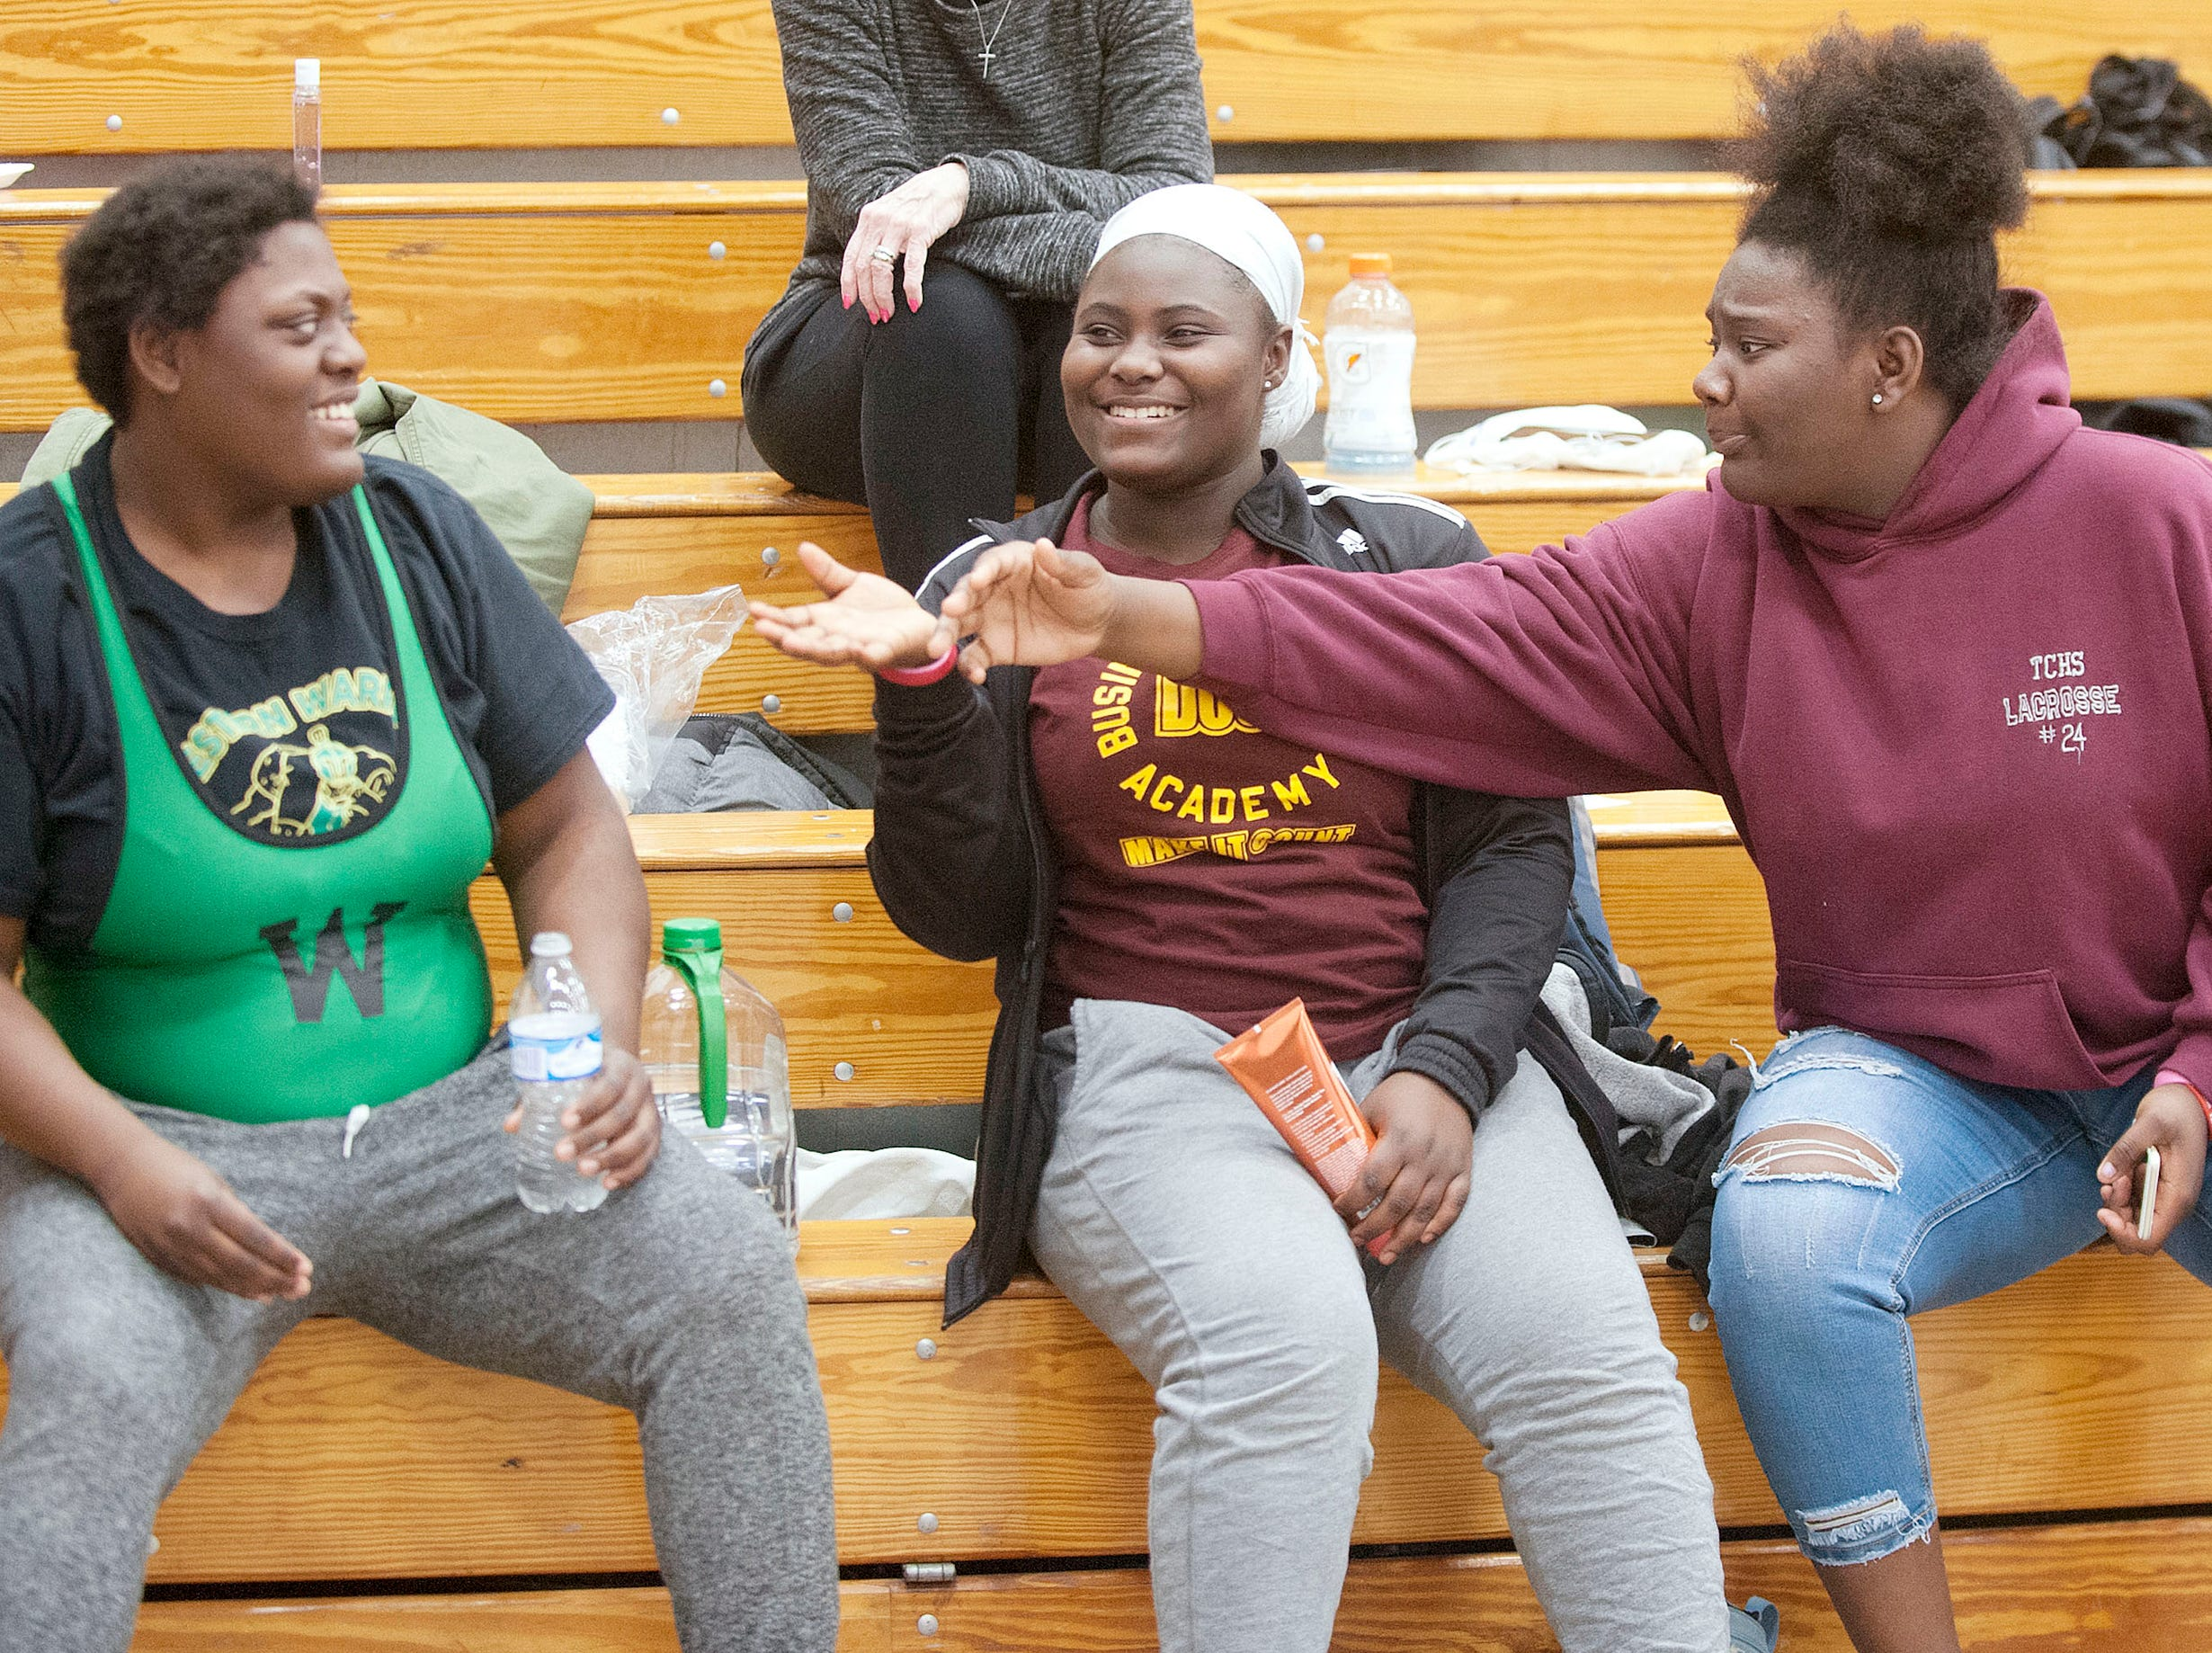 Western wrestler Malasha Lokey, left,  jokes with two of her close friends, Angel Badu, a former Western student now at Doss, center, and Karilya Sweet, right, Western's wrestling team manager.  The three were at a KHSAA Region 3 wrestling meet at Doss.